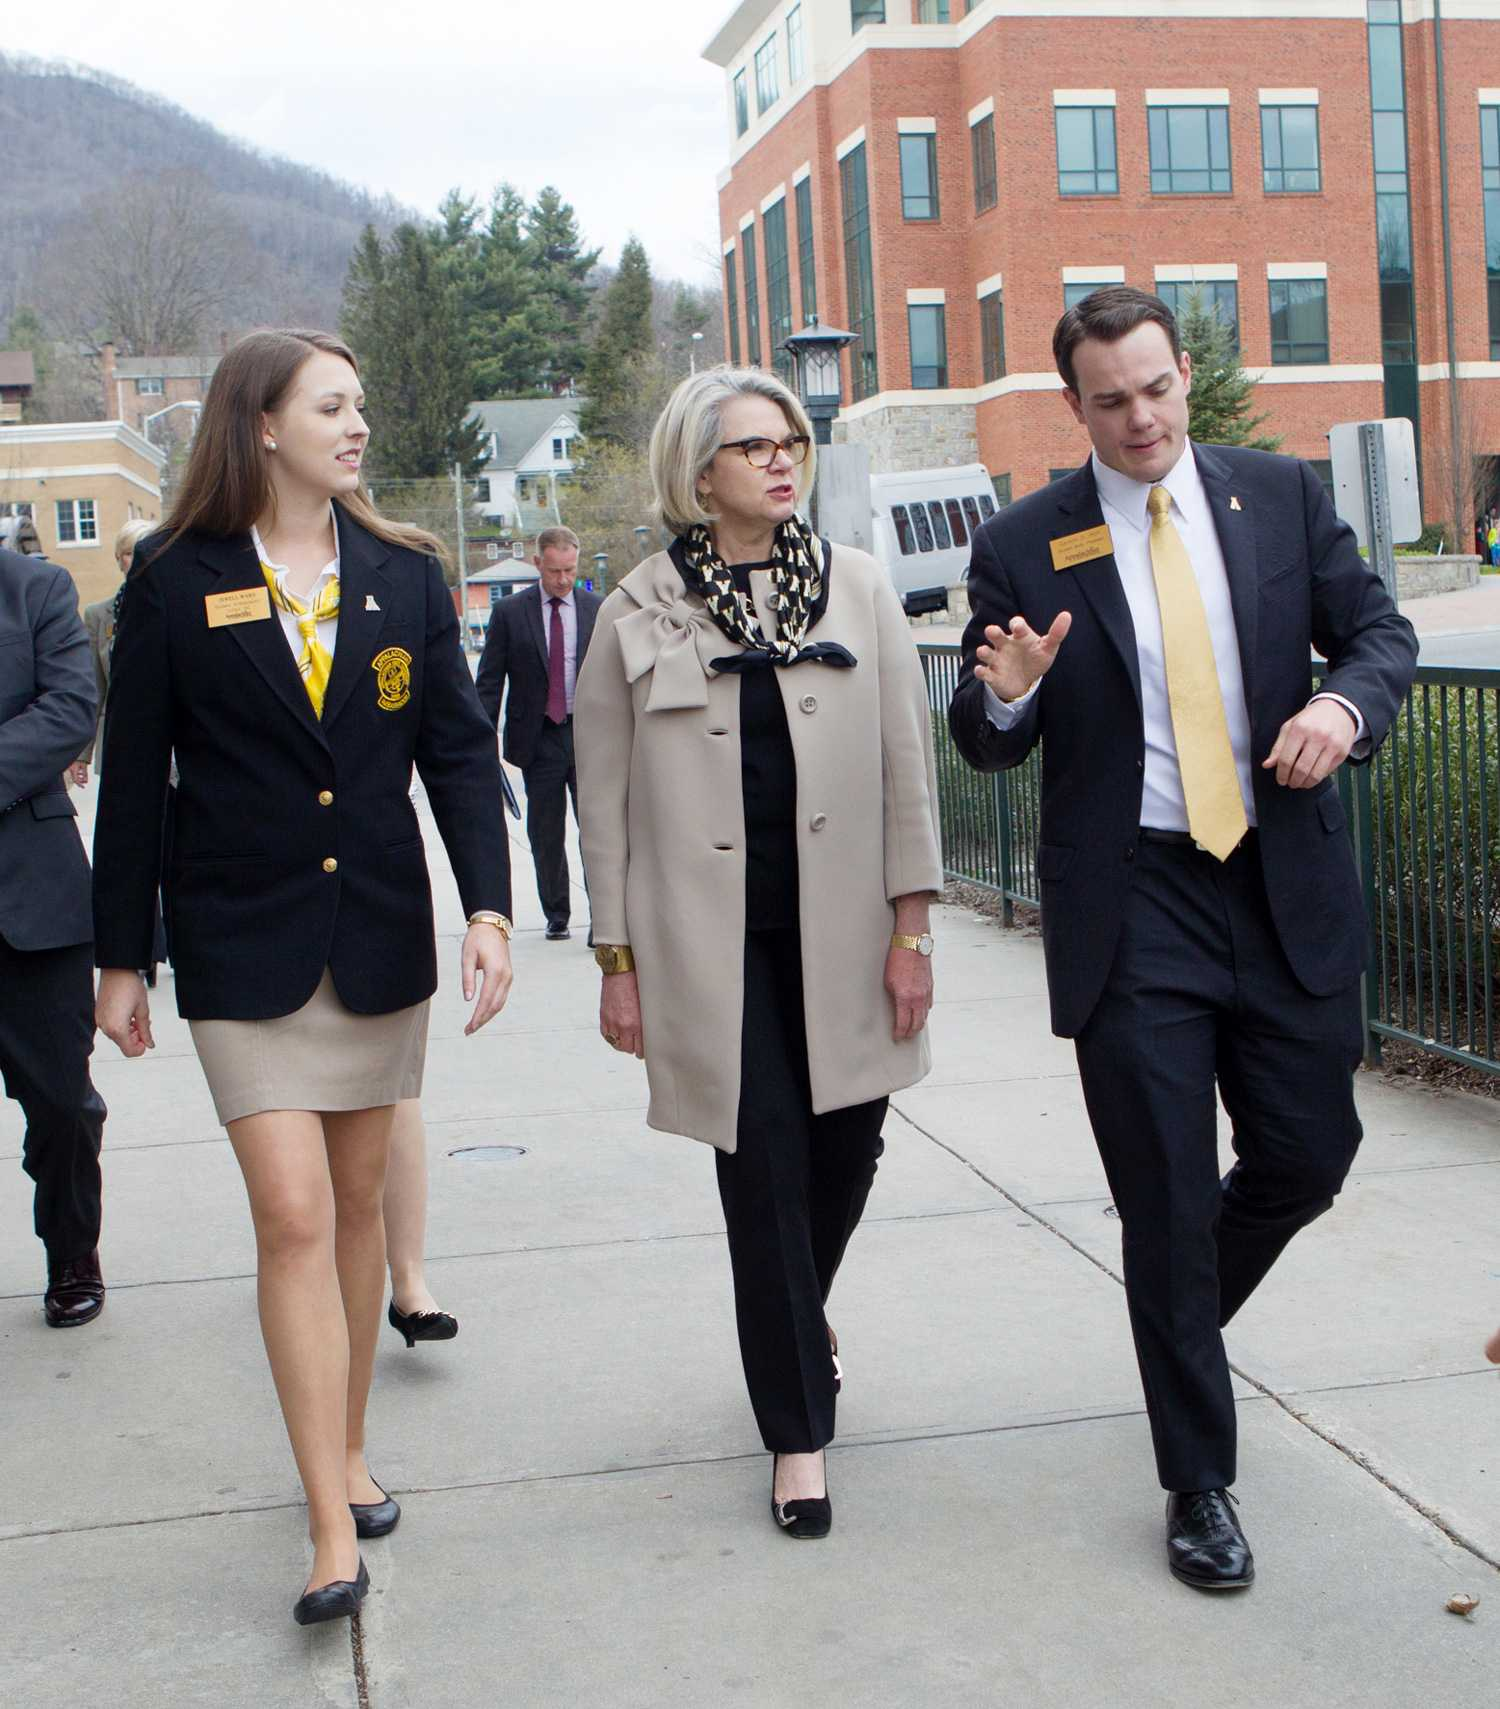 University of North Carolina System President Margaret Spellings talks with Appalachian Student Ambassadors President Jewell Ward and Student Government Association President Carson Rich. Photo courtesy of App State press release.